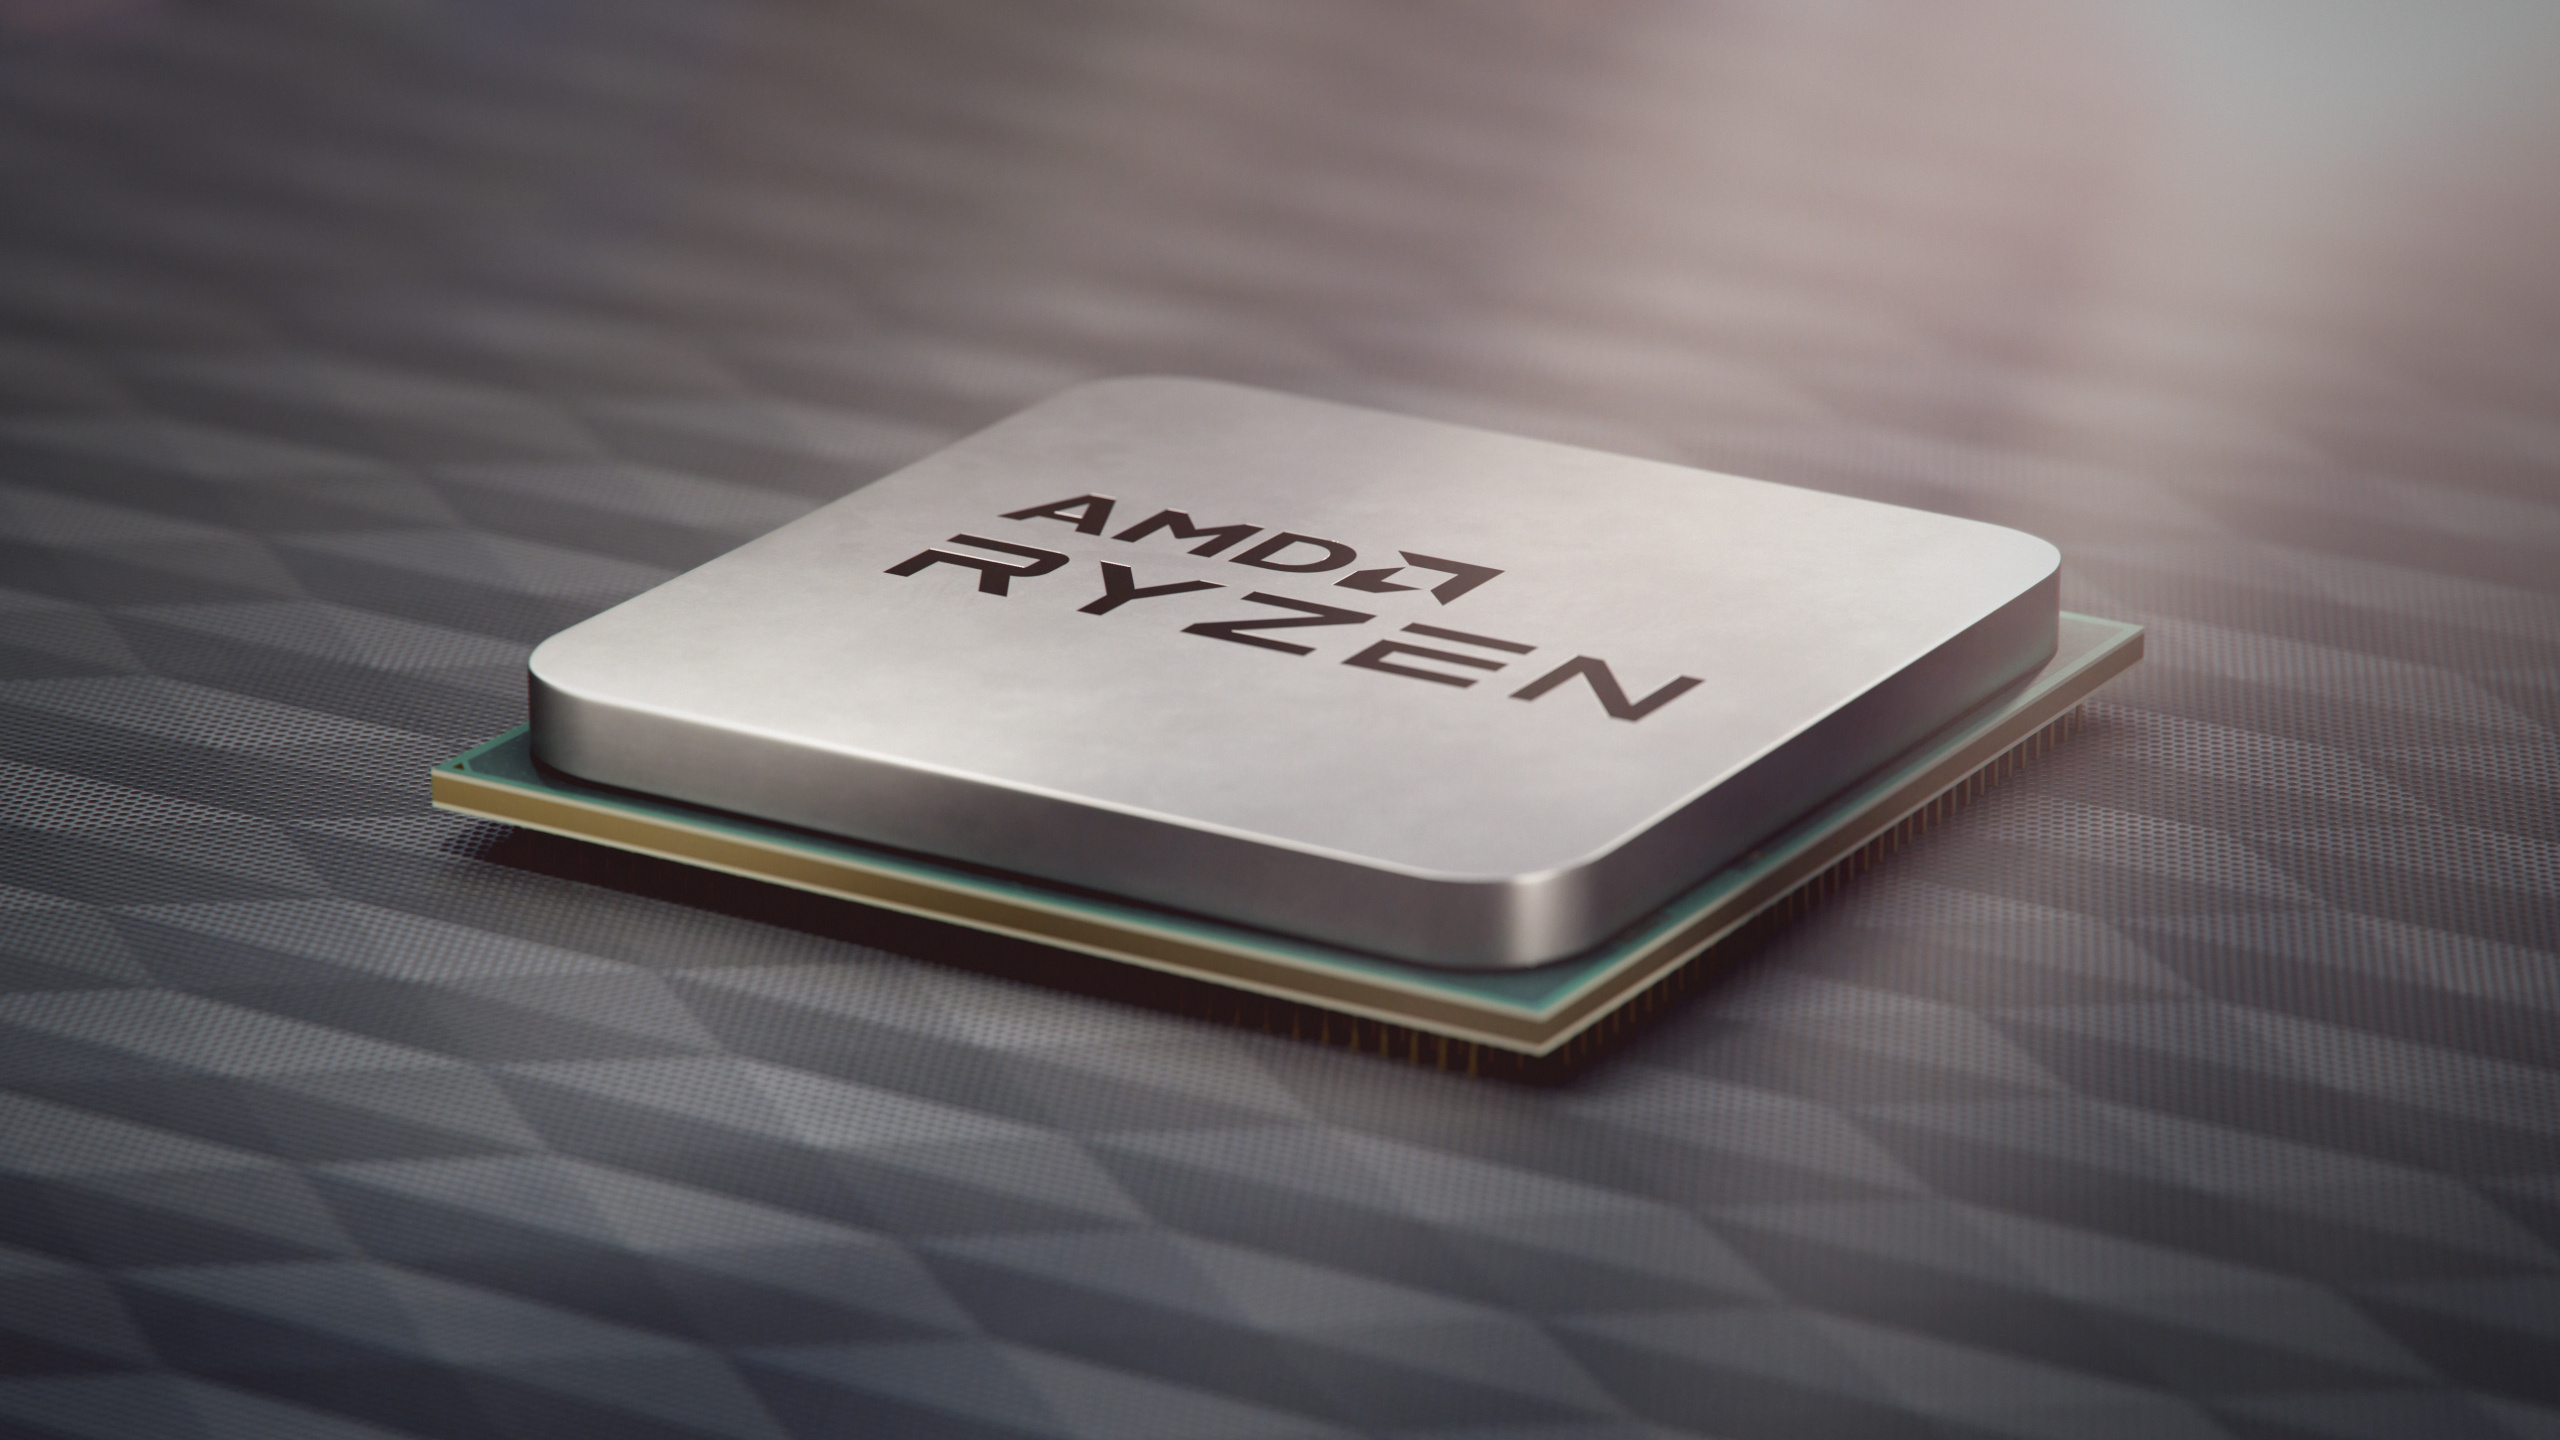 AMD's Beastly 16-Core Ryzen 9 3950X Hits Lowest Price Ever